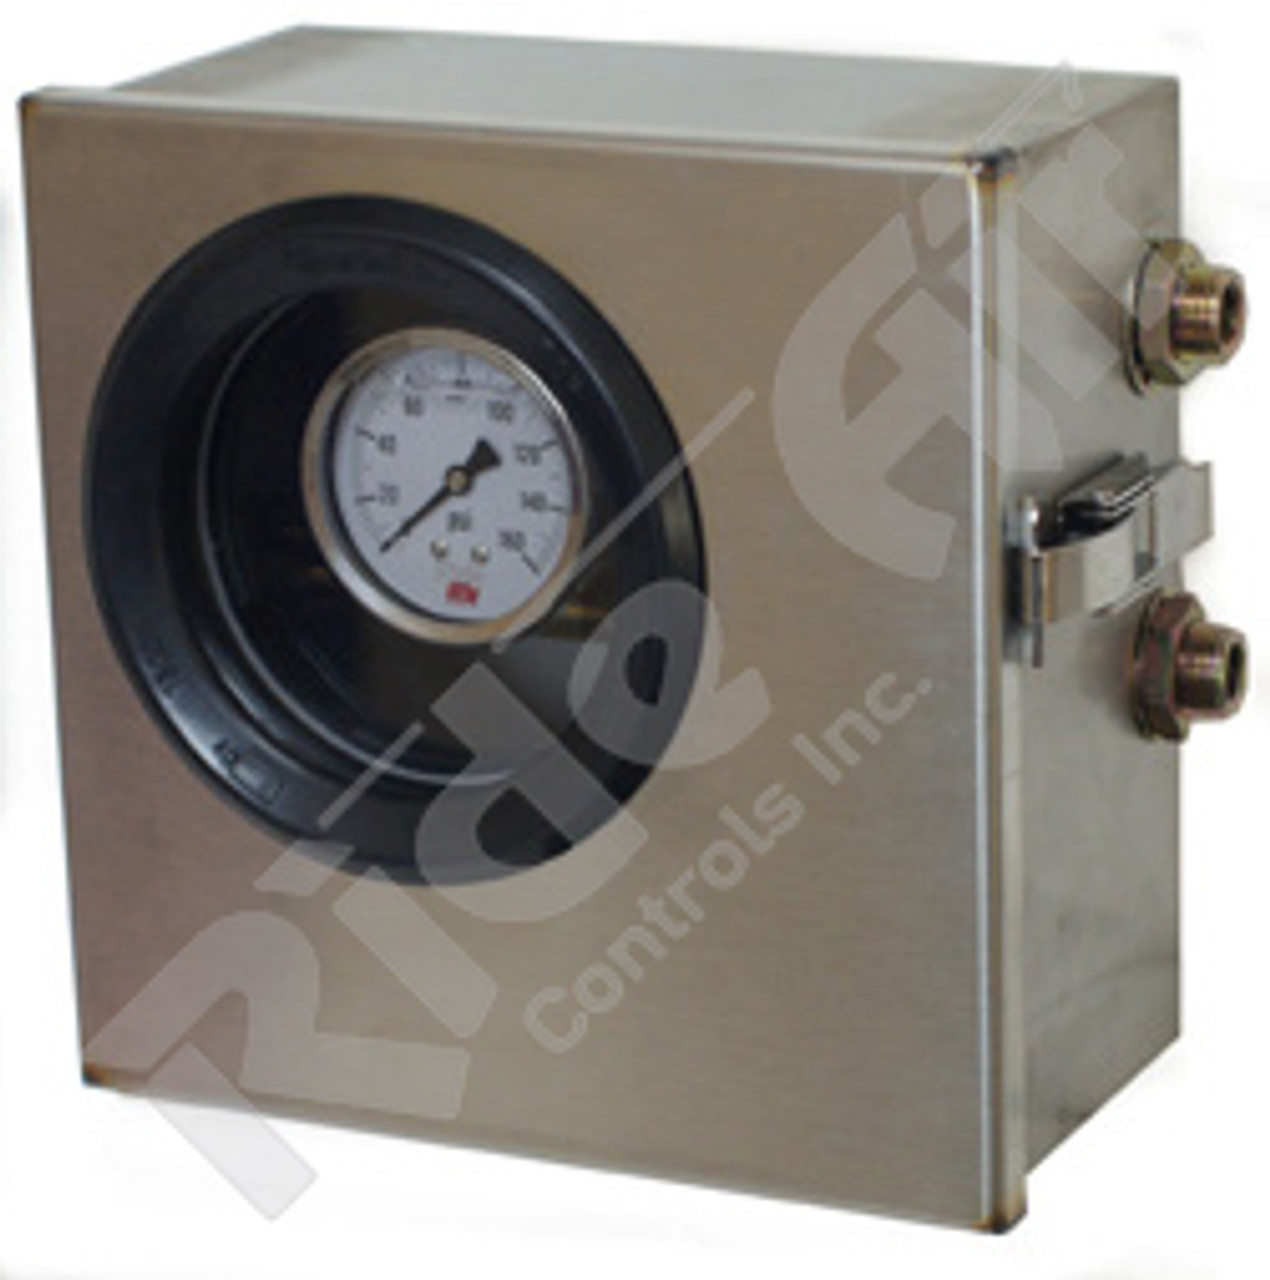 Stainless Steel Control Box W/Stainless Latch (RA014GLSW)